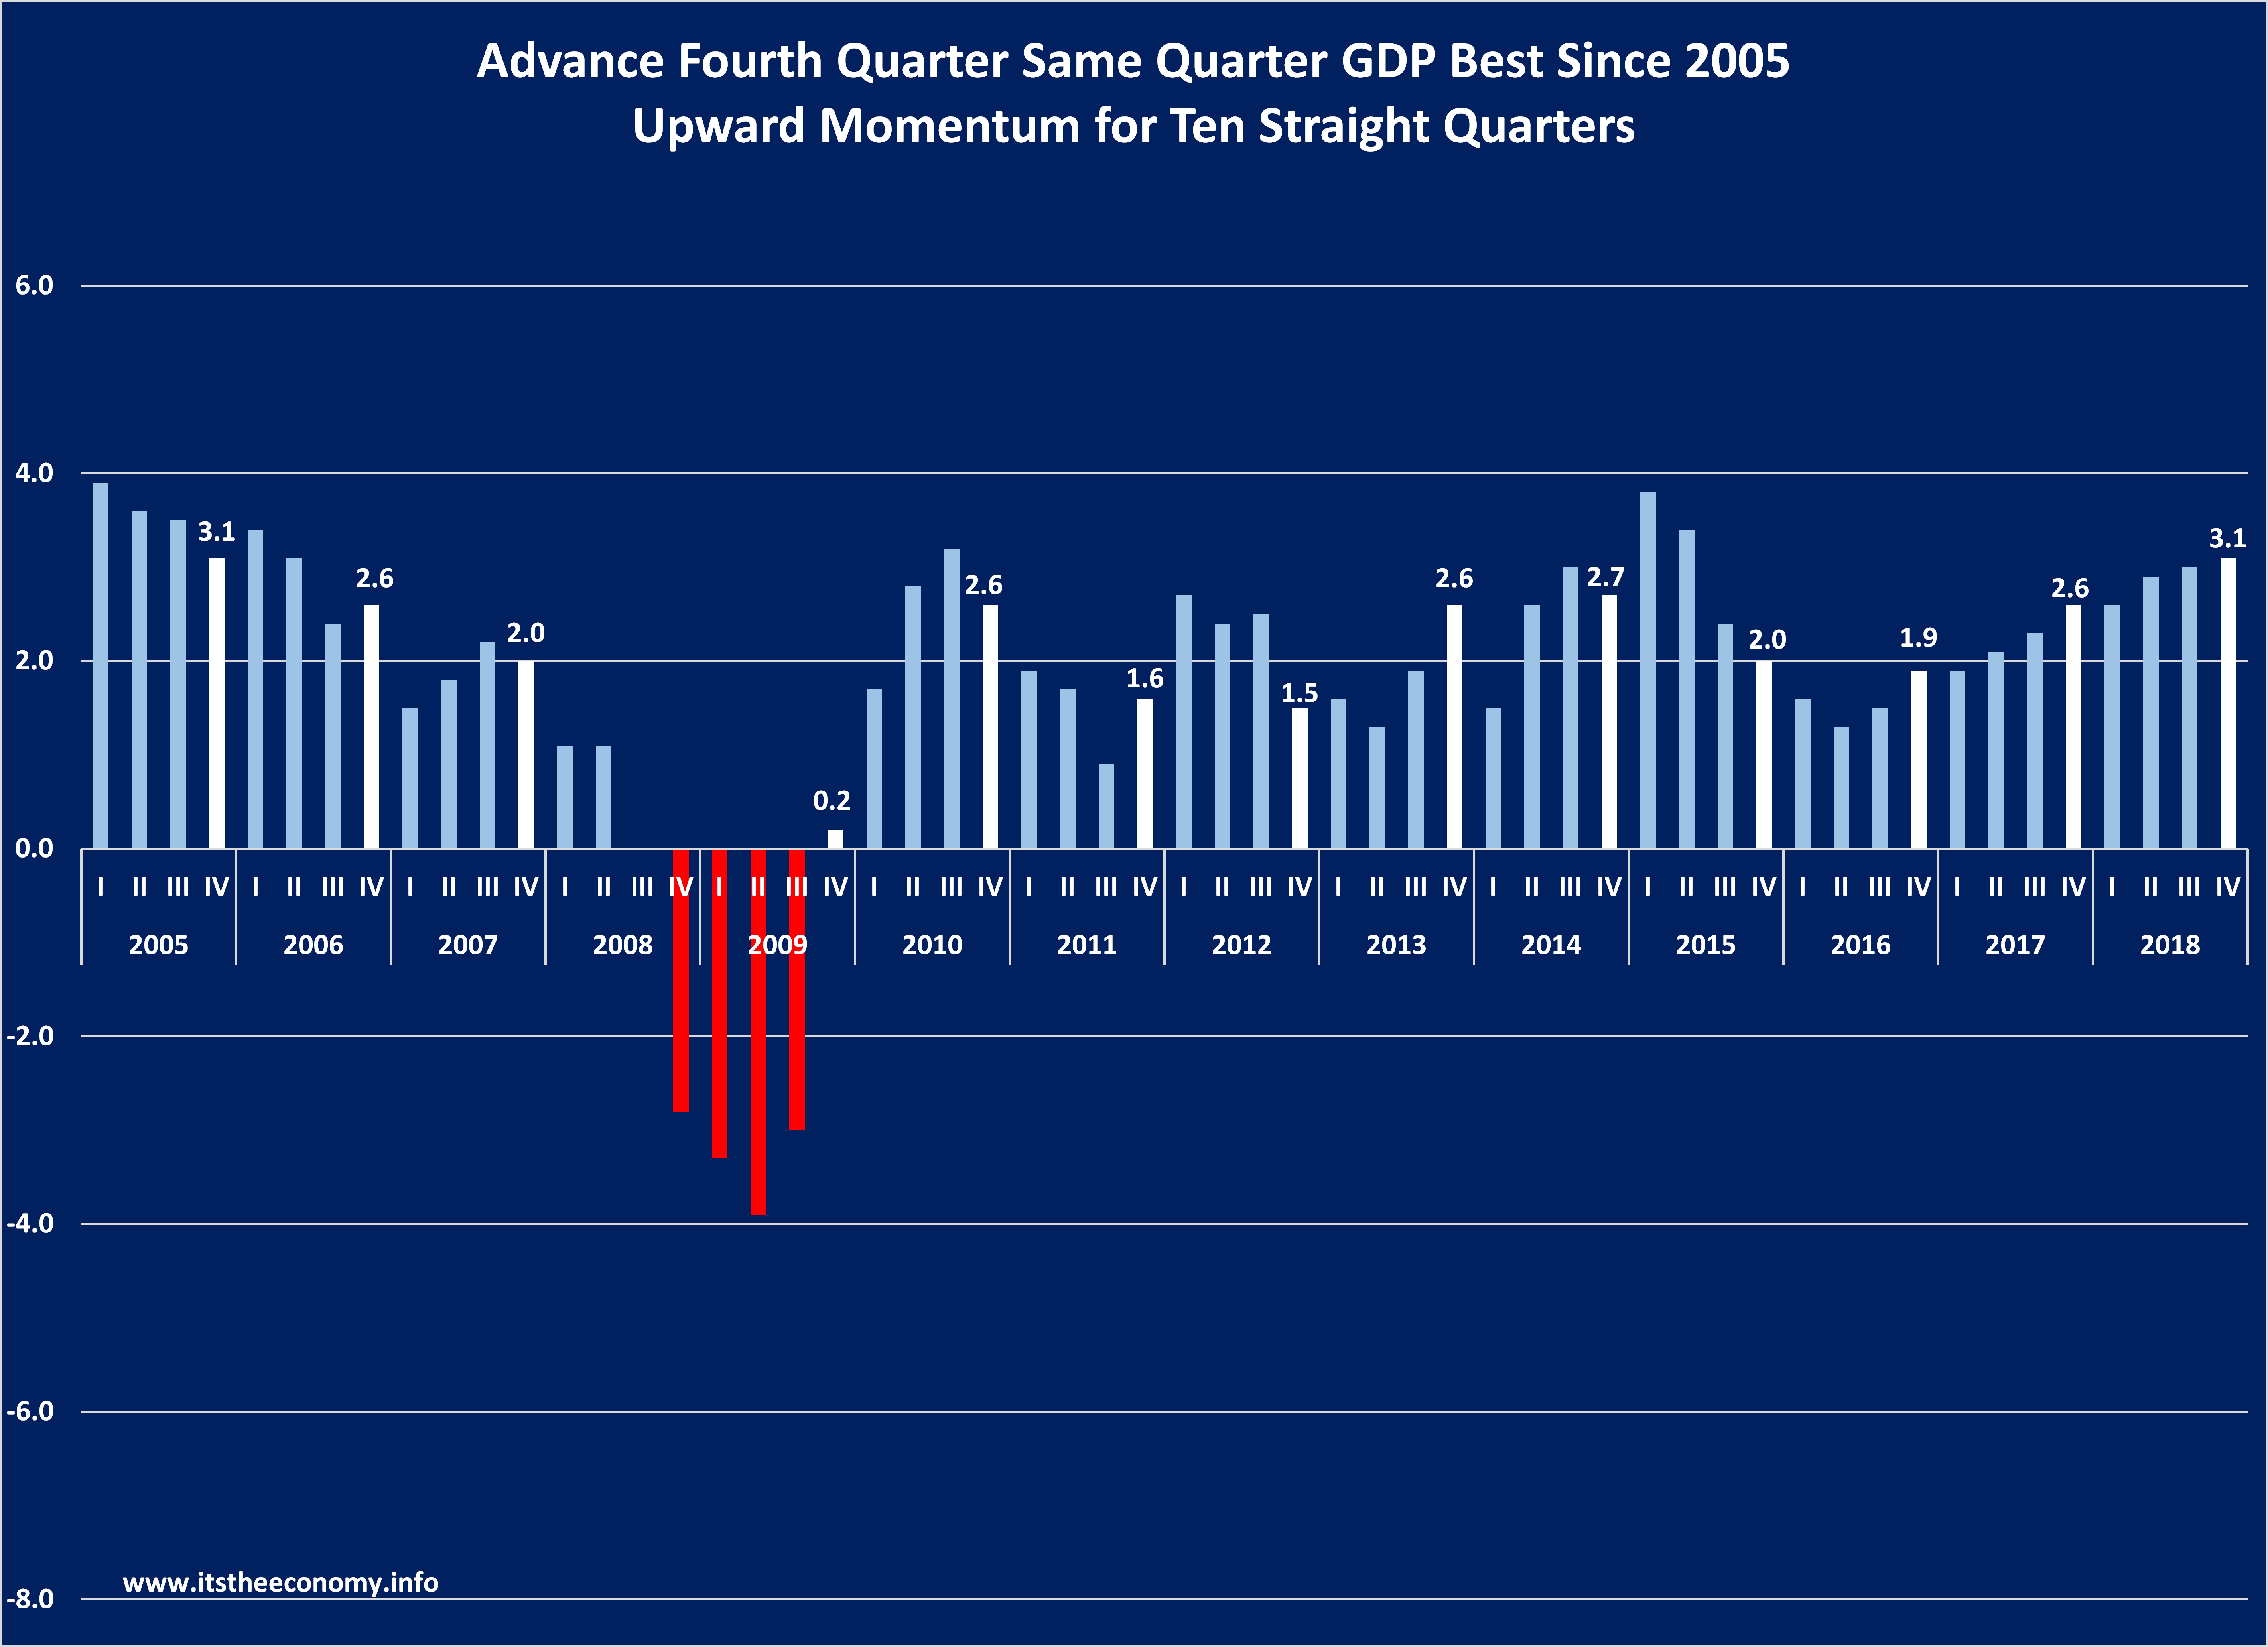 Ten straight quarters of growth same quarter growth. The Same quarter growth was 3.1% and was better than any fourth quarter since 2005.